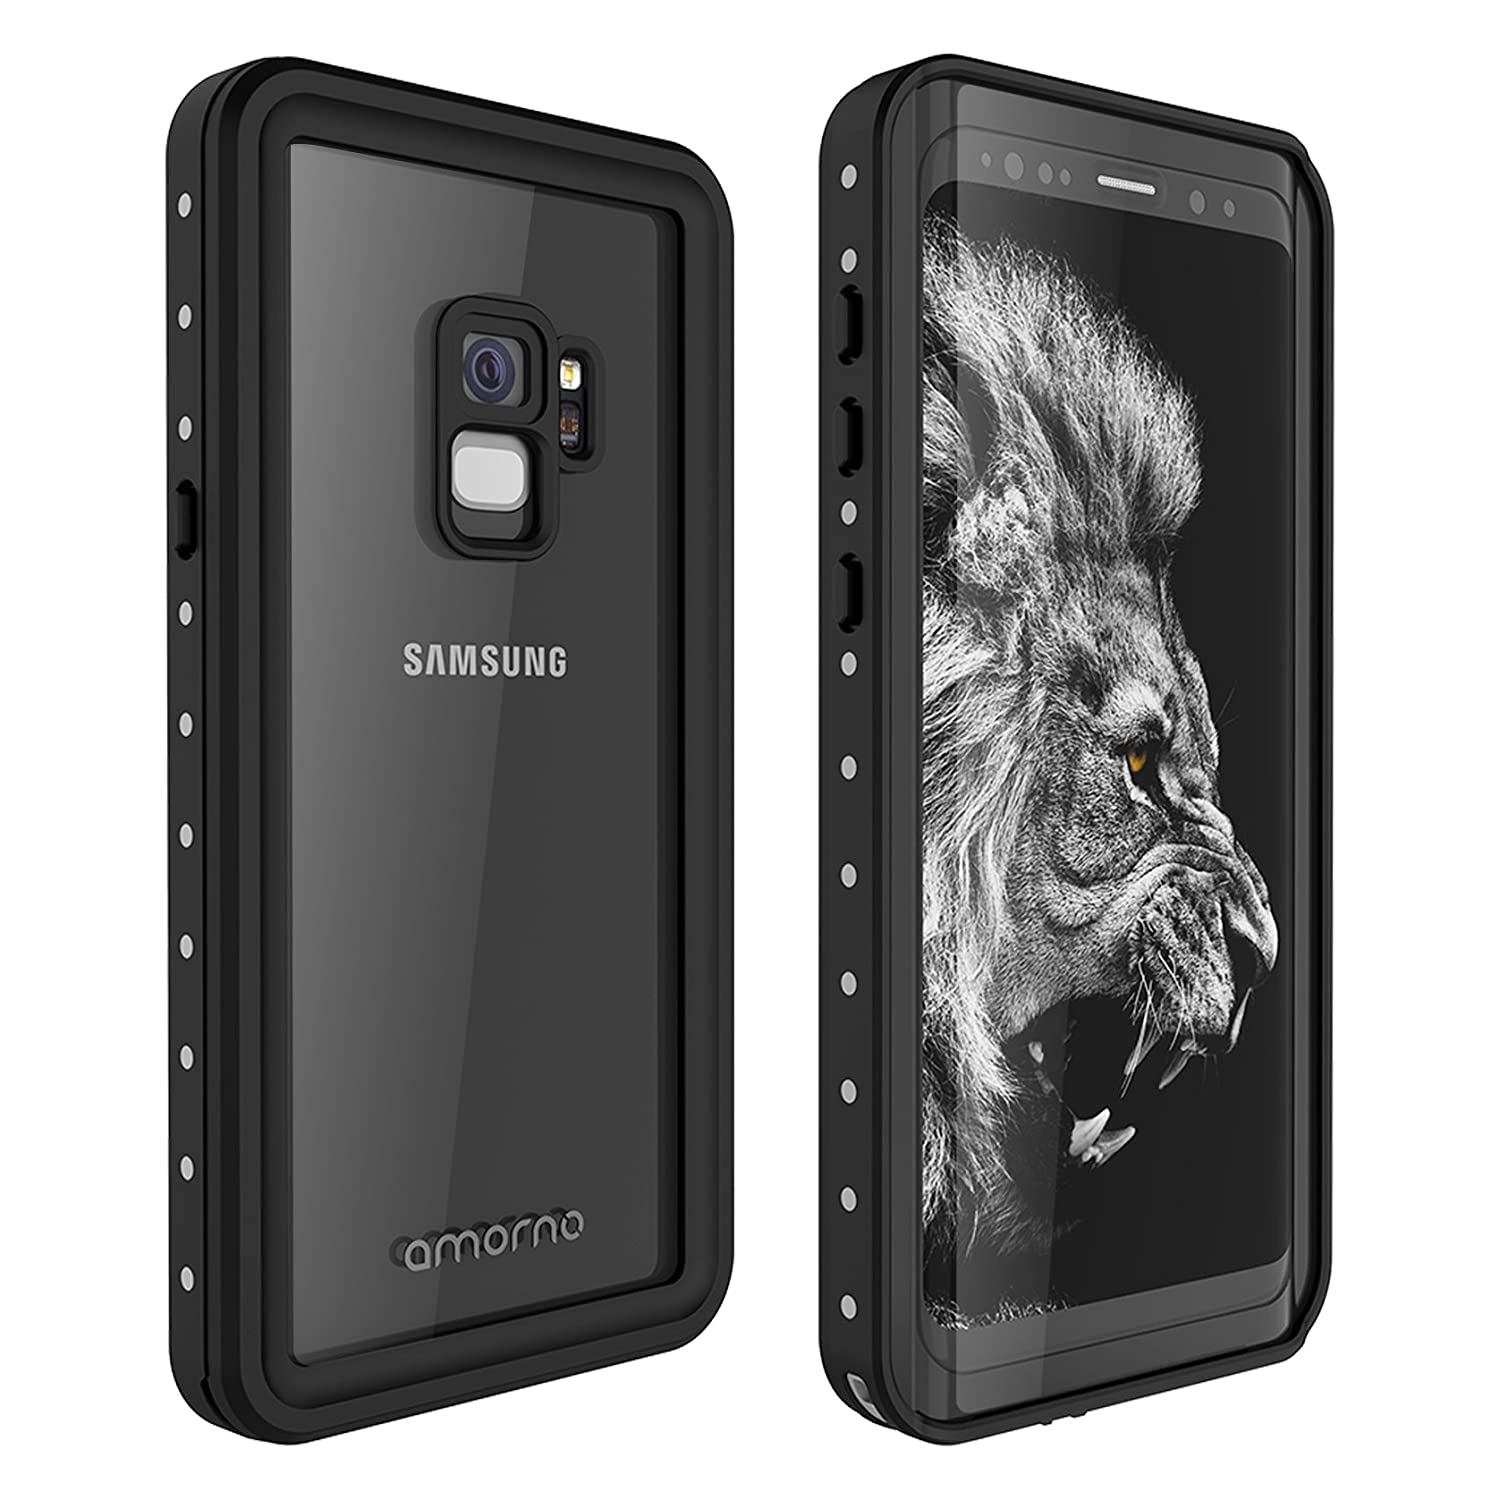 finest selection c86bd 33283 Galaxy S9 Waterproof Case, AMORNO Waterproof Shockproof Dustproof Dirtproof  Full Body Case Built in Screen Protector with Touch ID for Samsung Galaxy  ...